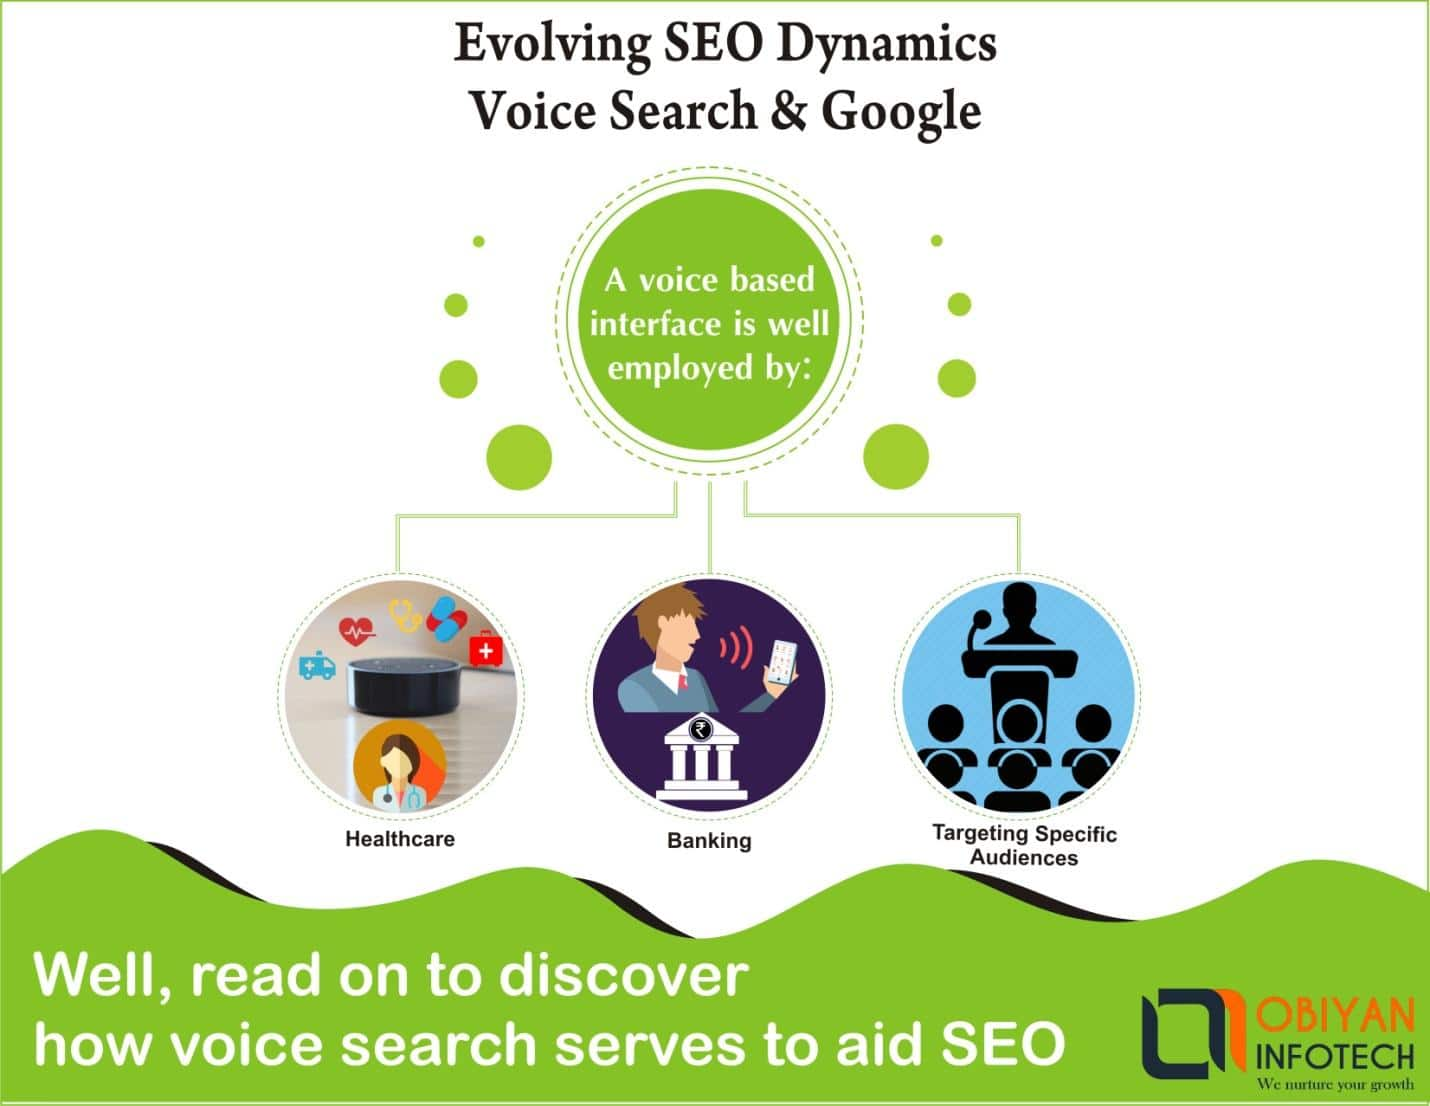 How does voice search help evolve SEO further?